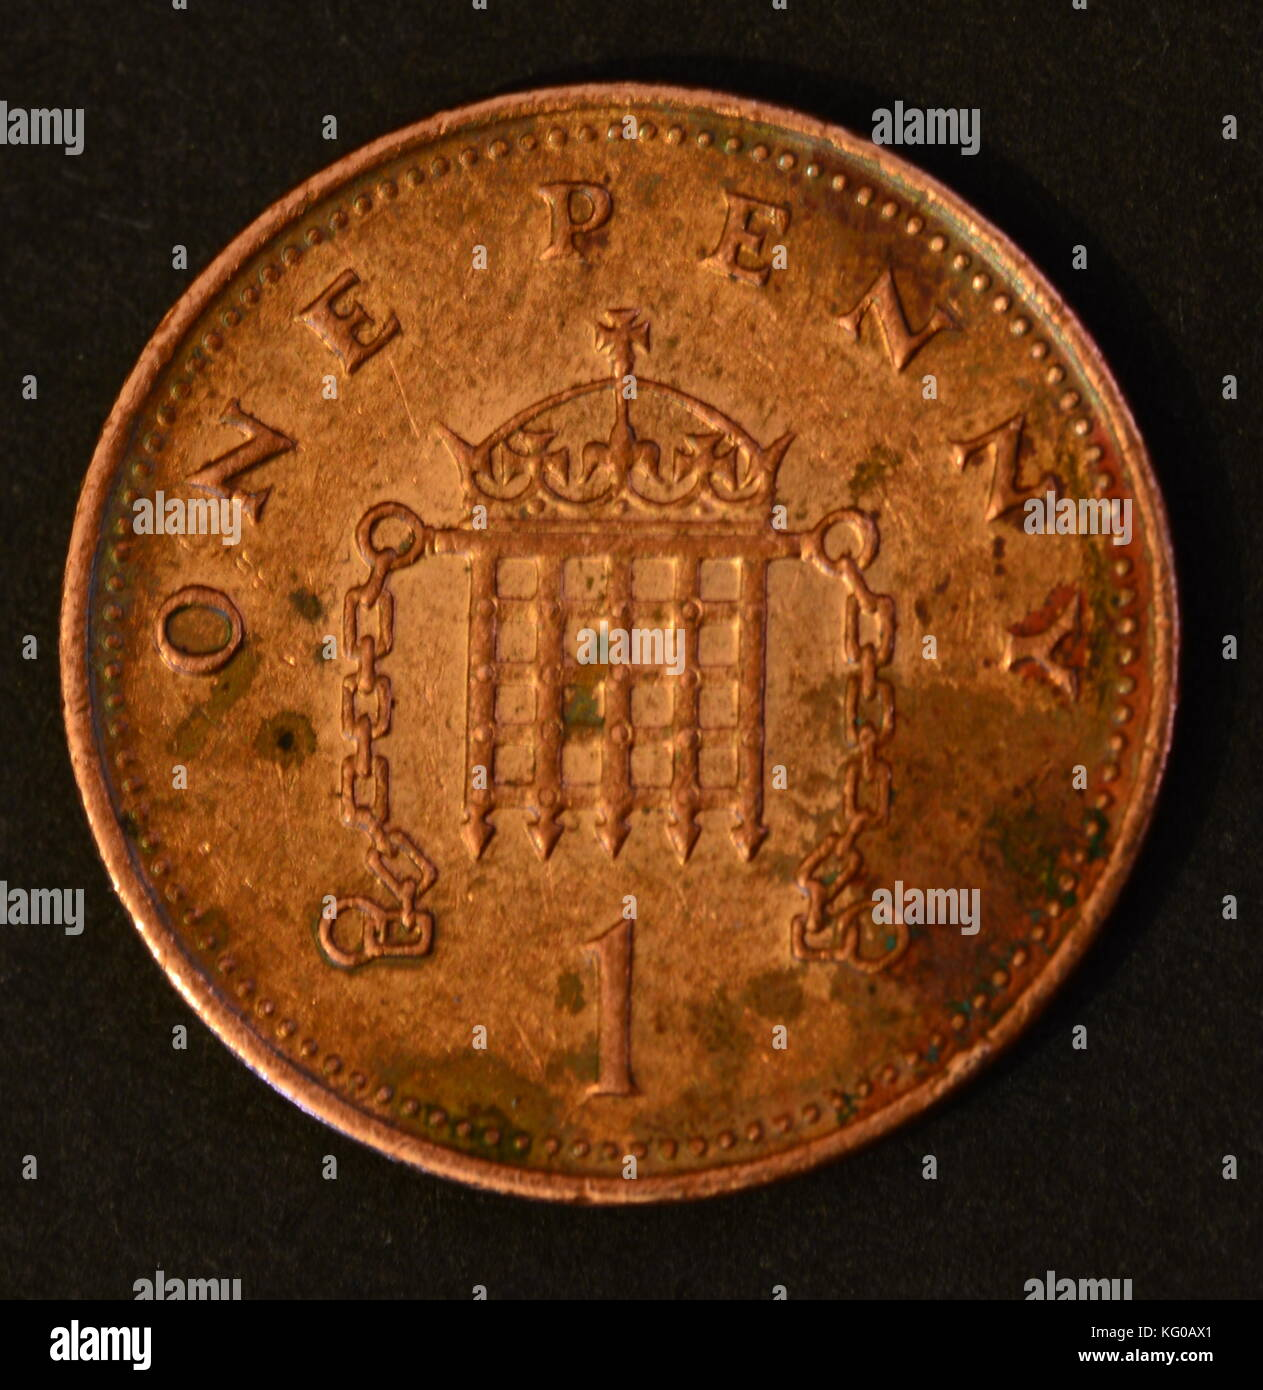 One Pence coin - Stock Image